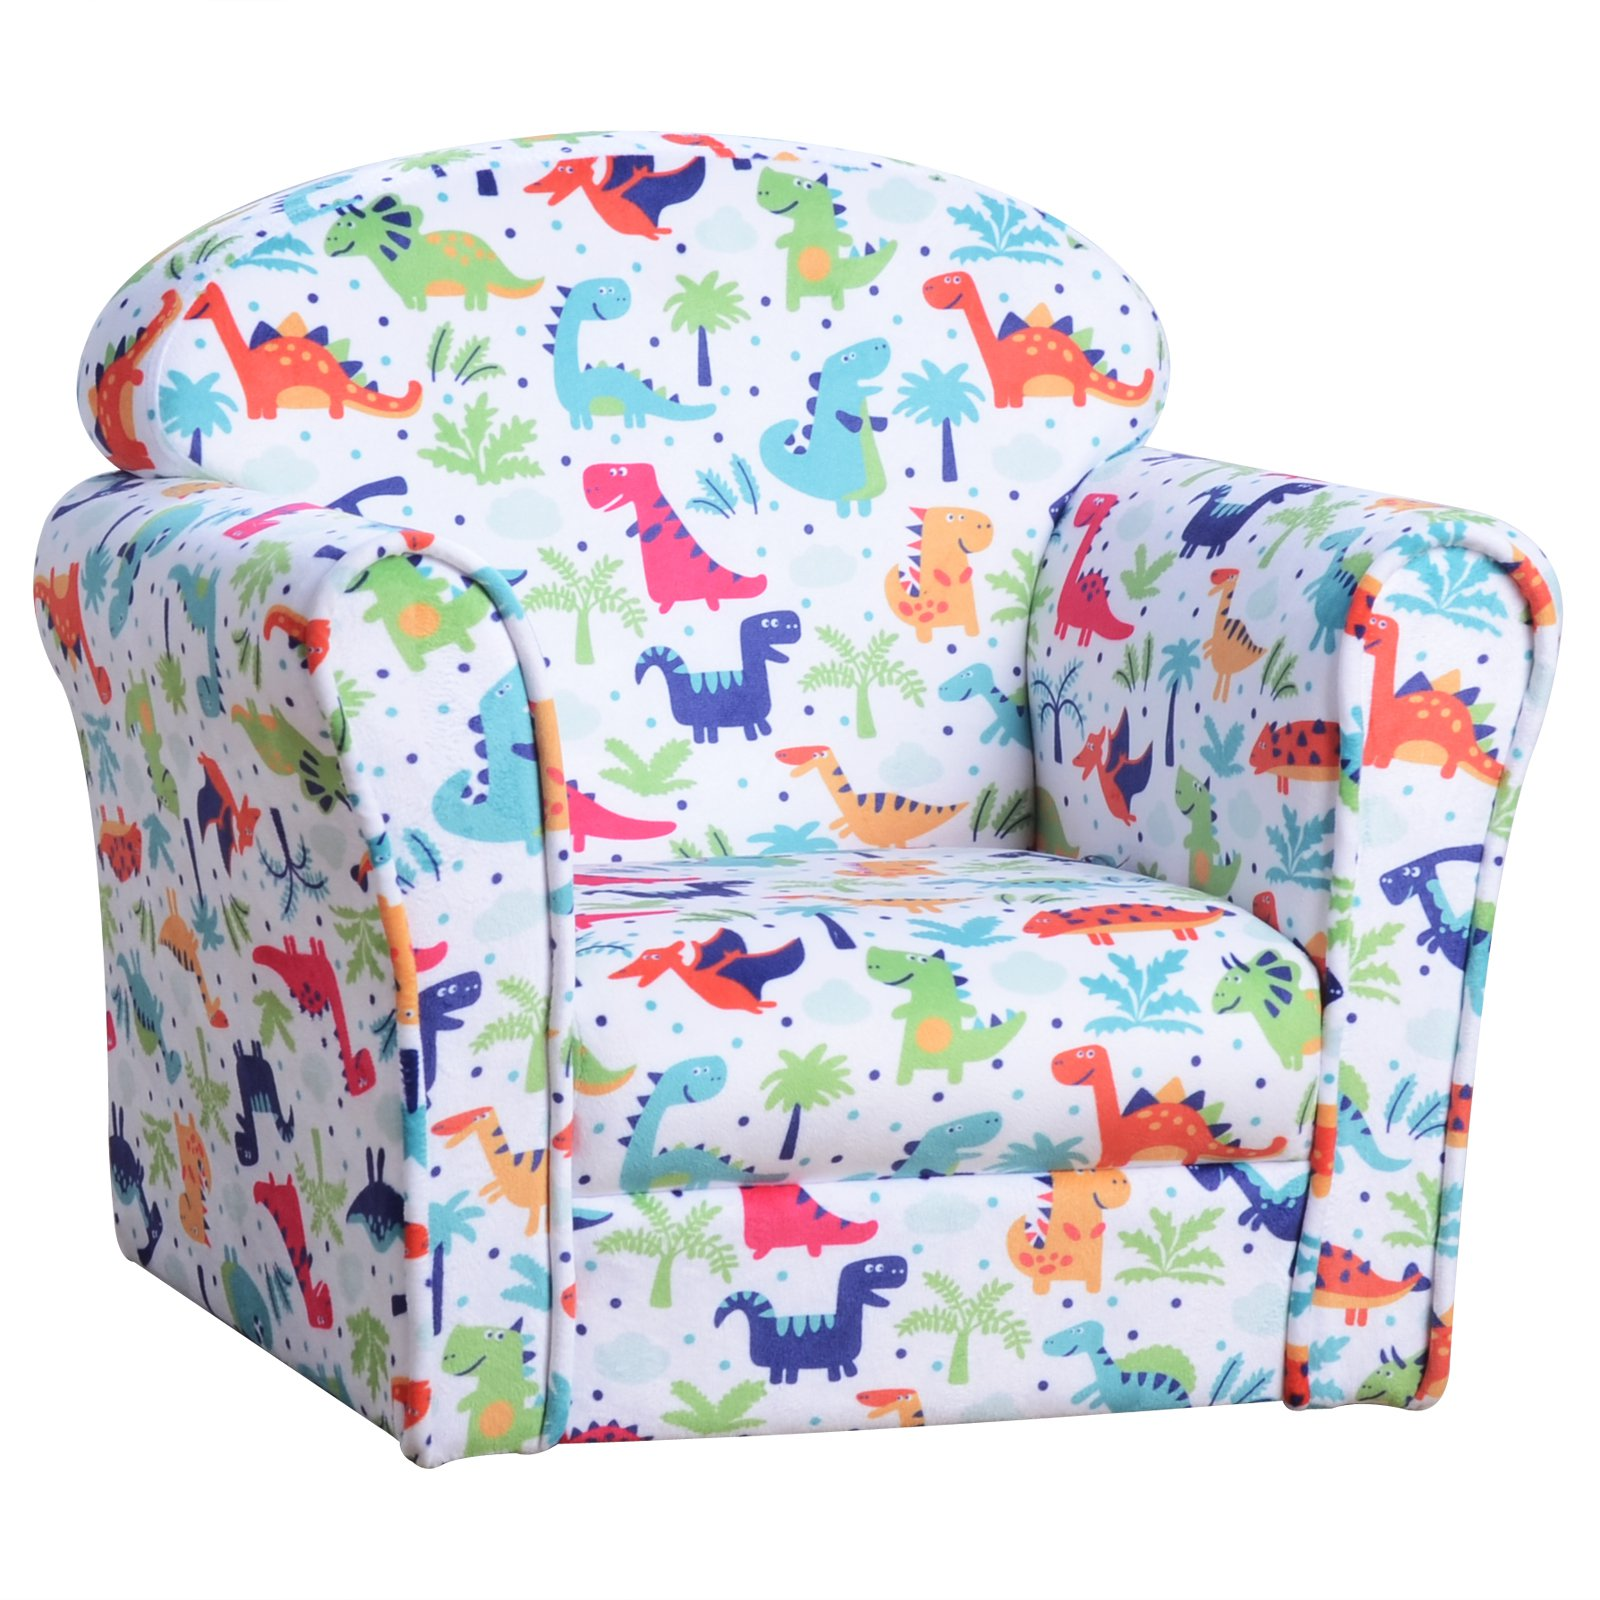 Armchairs & Massage Chairs,Home Goods